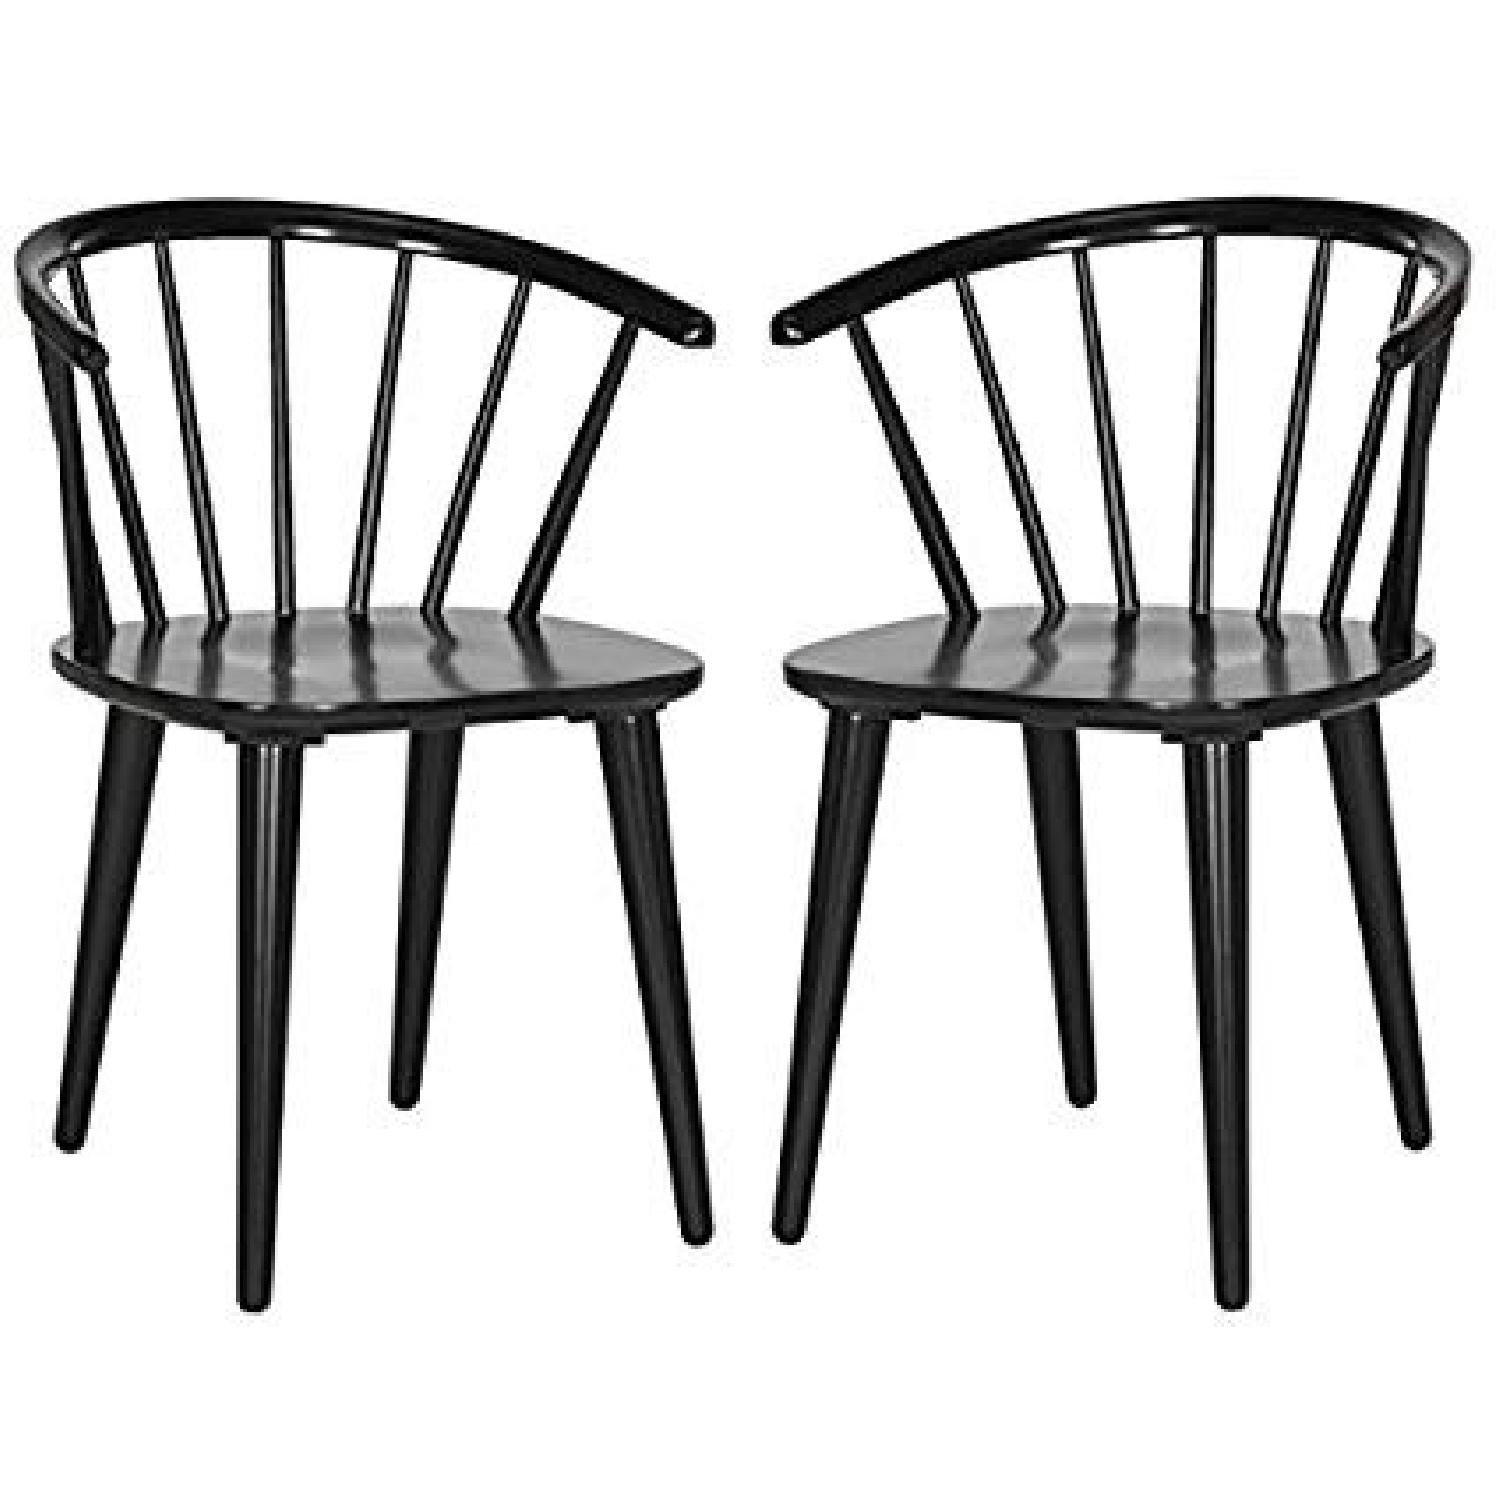 Safavieh Scandinavian Wood Dining Chairs